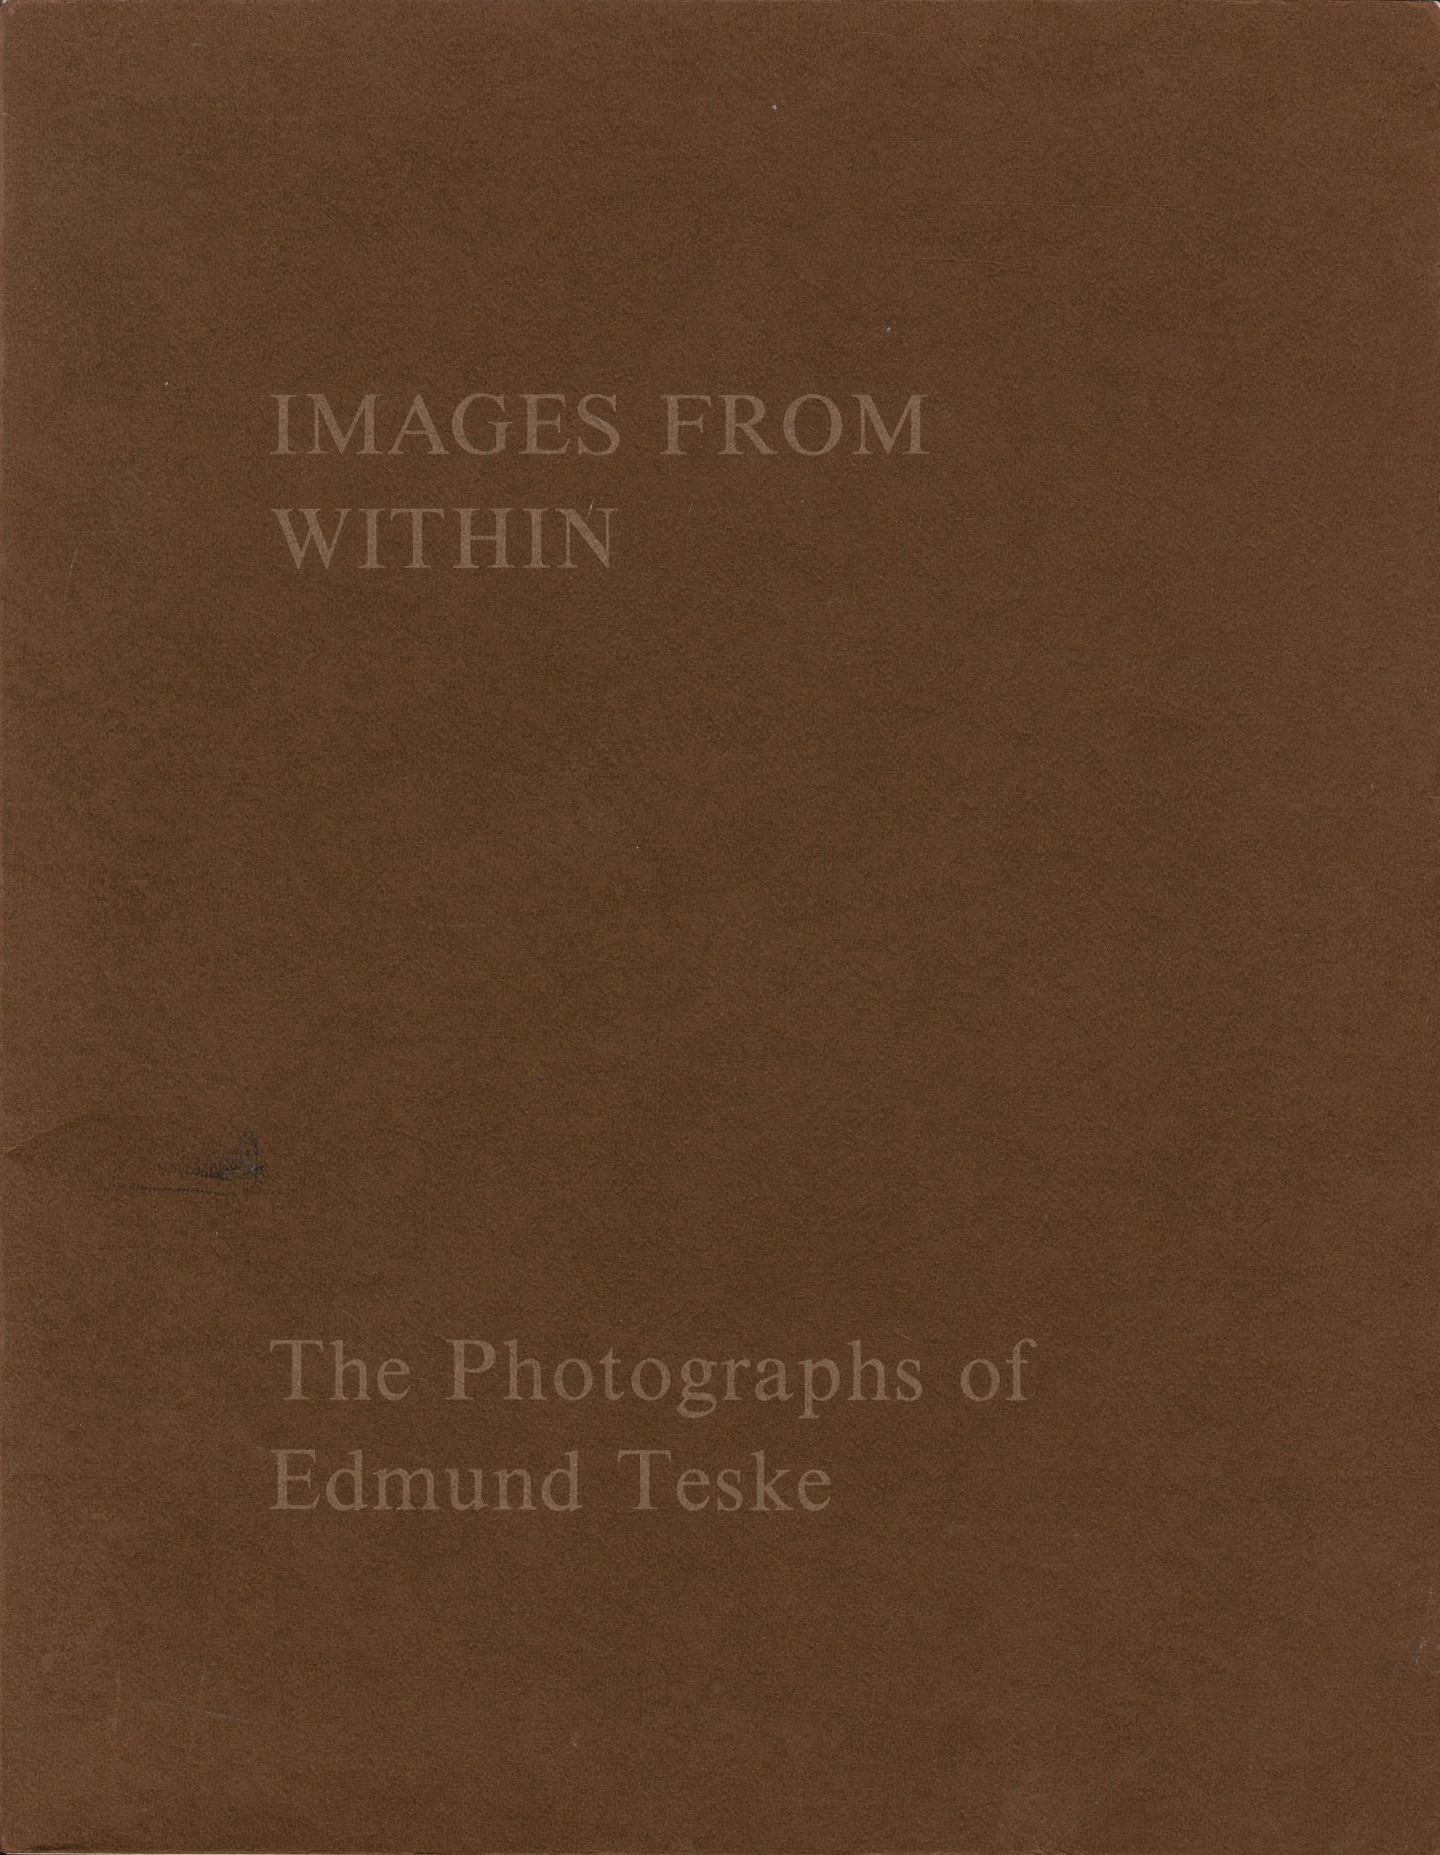 Untitled 22 (The Friends of Photography): Images from Within: The Photographs of Edmund Teske